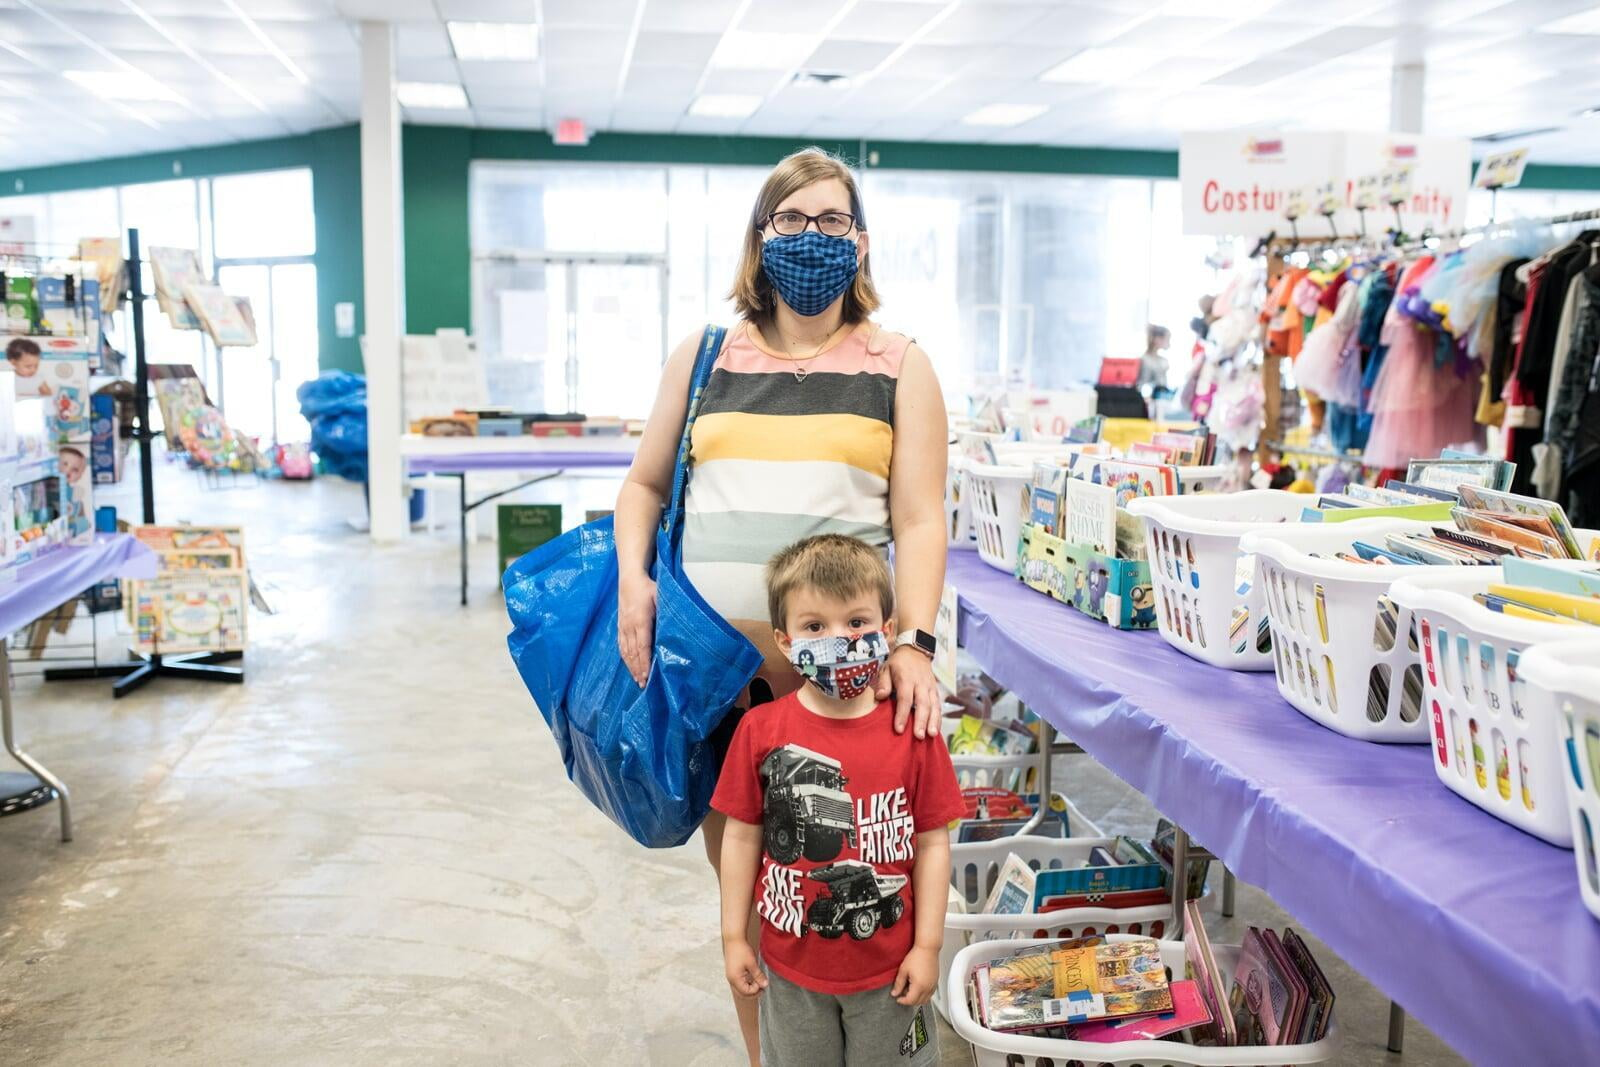 A mom and her four-year-old son stand with their masks and shopping bag in front of baskets of books and costumes.